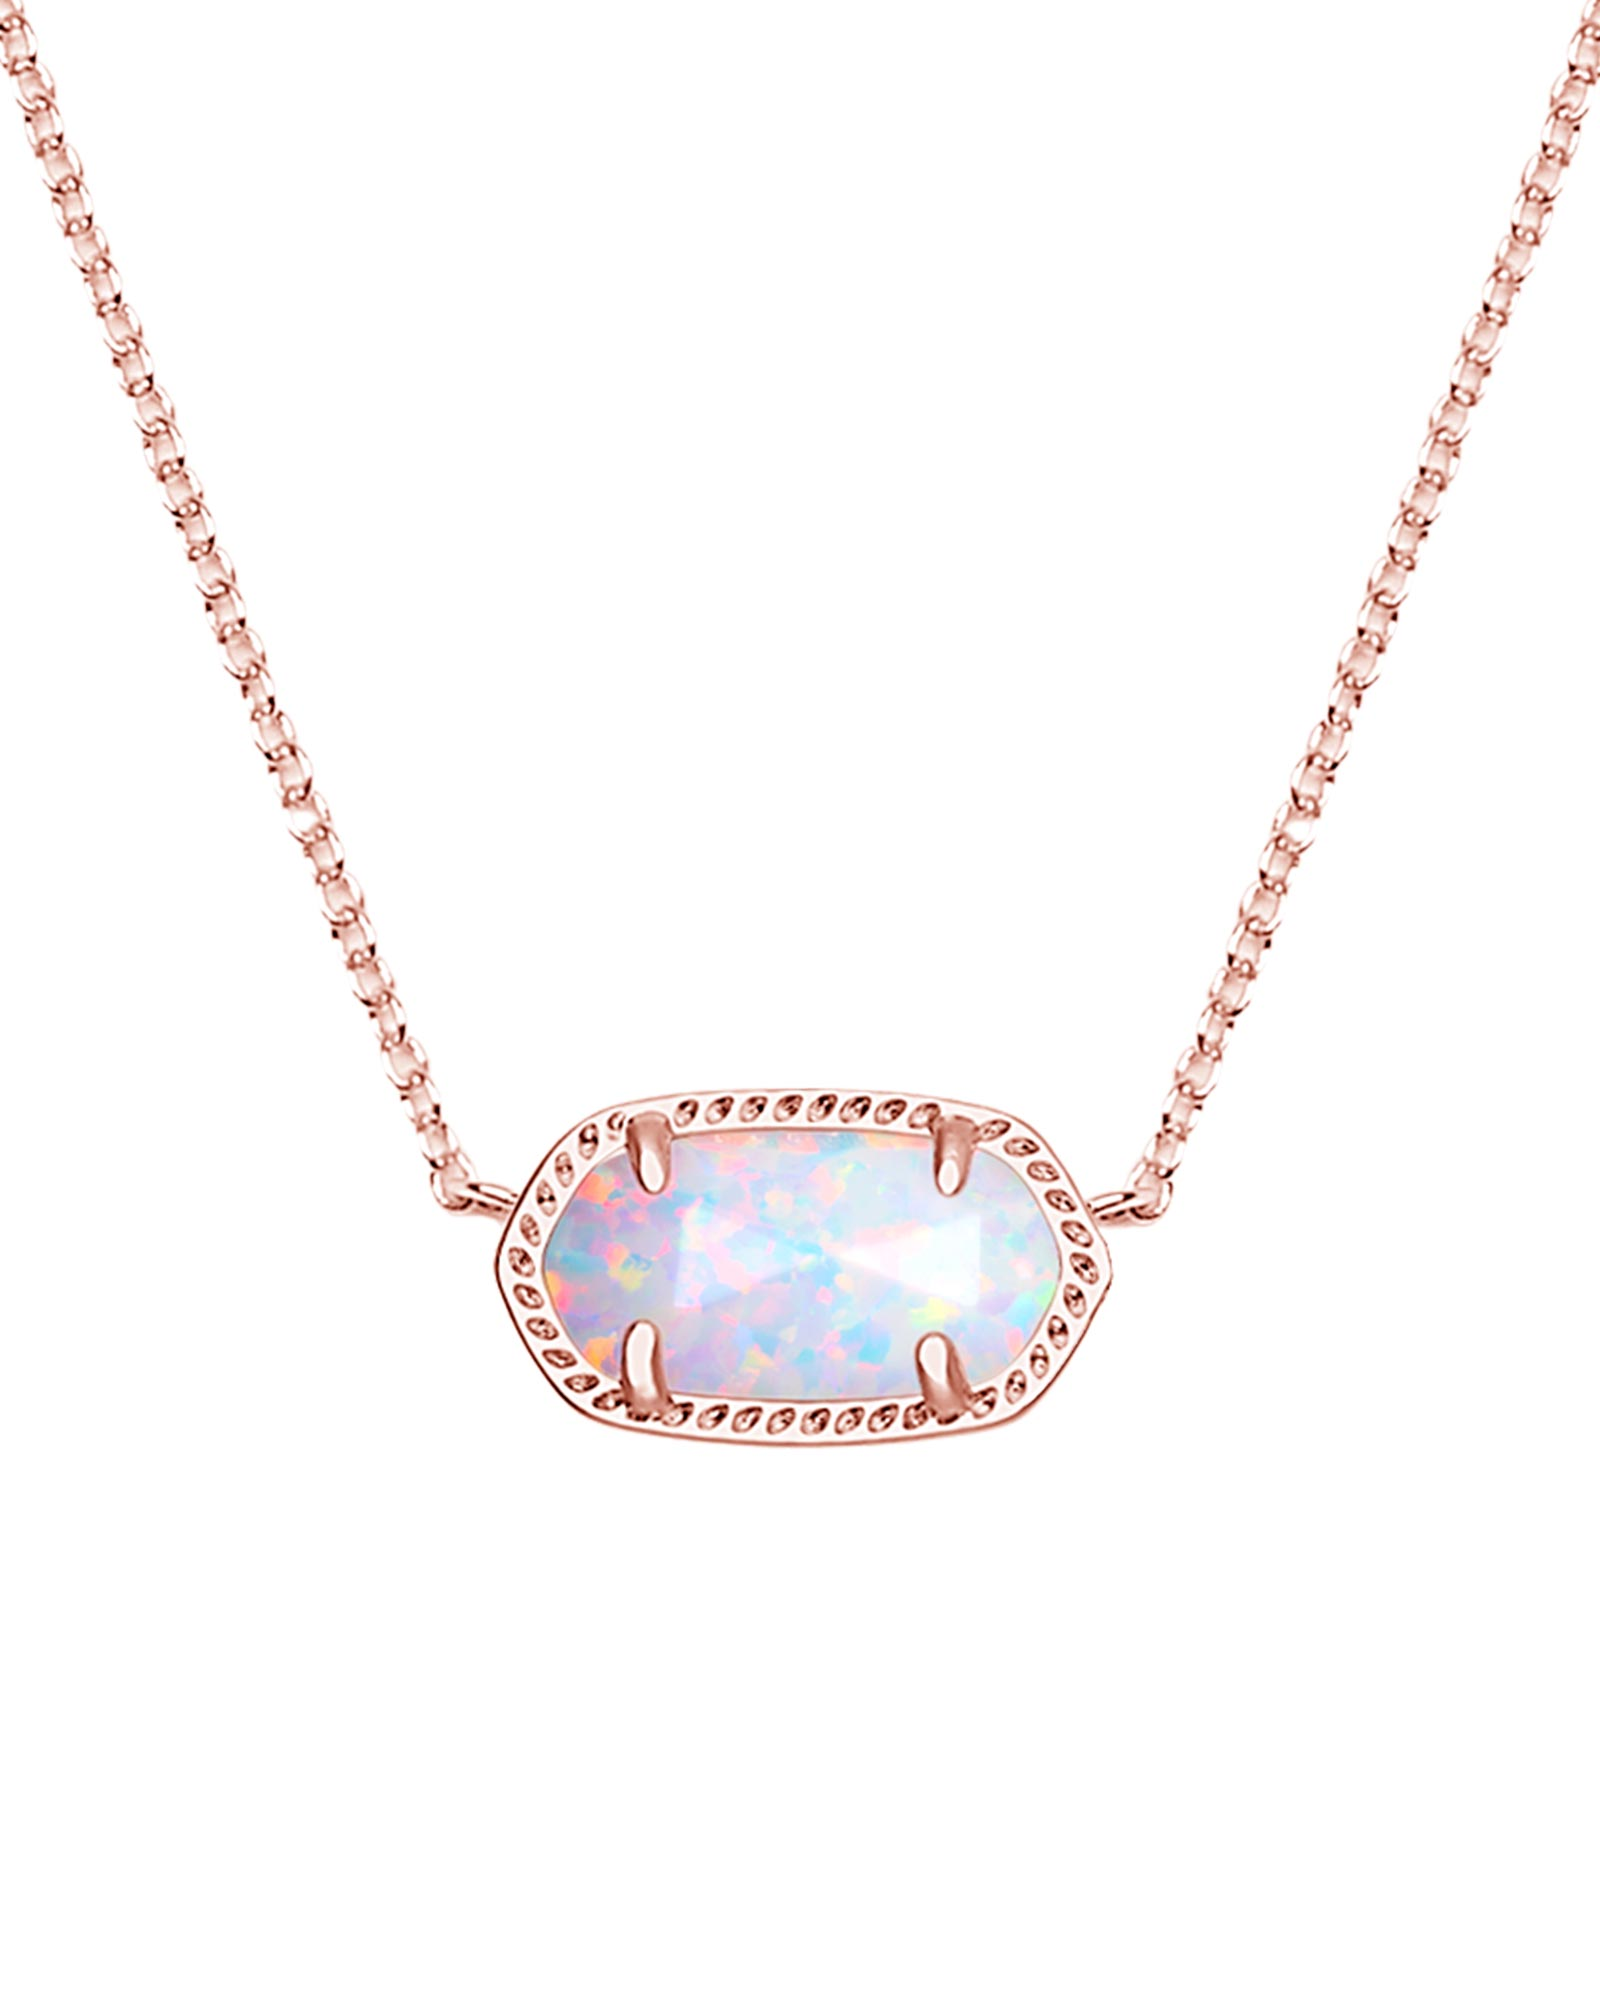 Elisa Rose Gold Pendant Necklace in White Kyocera Opal